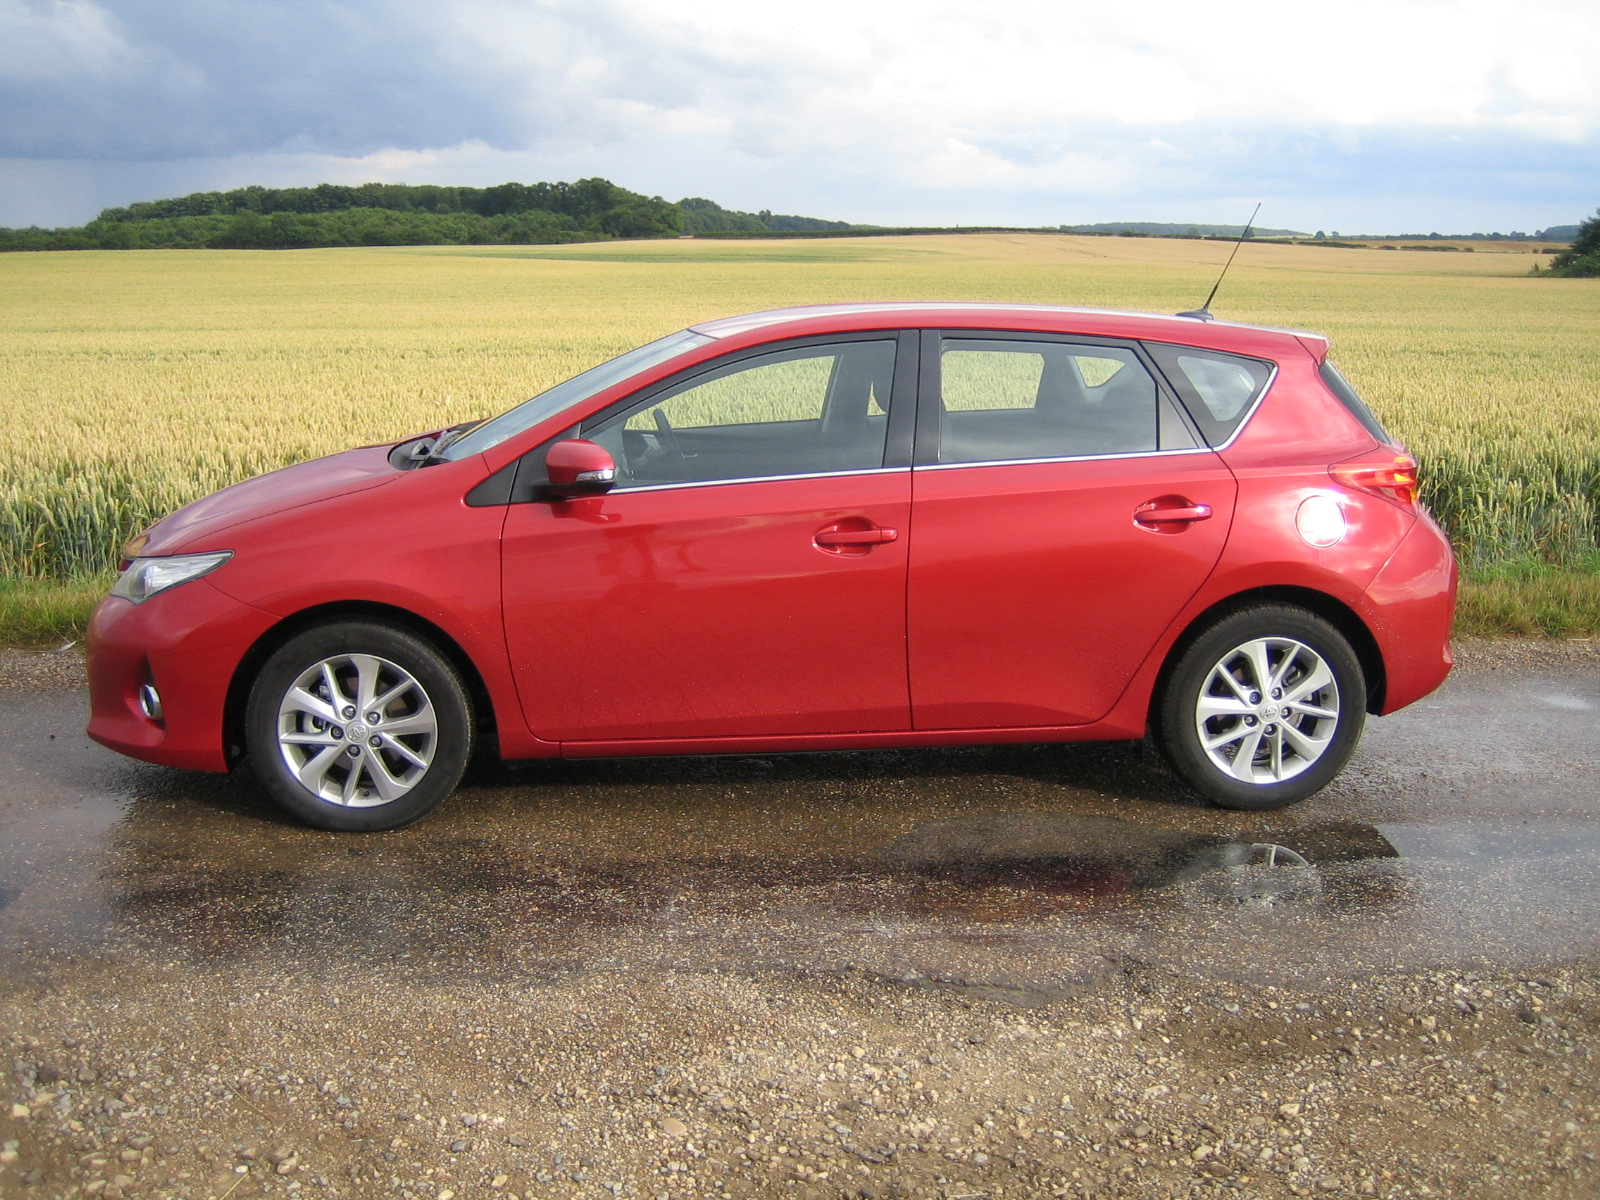 toyota auris icon 1 4 d4d road test reveals and review. Black Bedroom Furniture Sets. Home Design Ideas